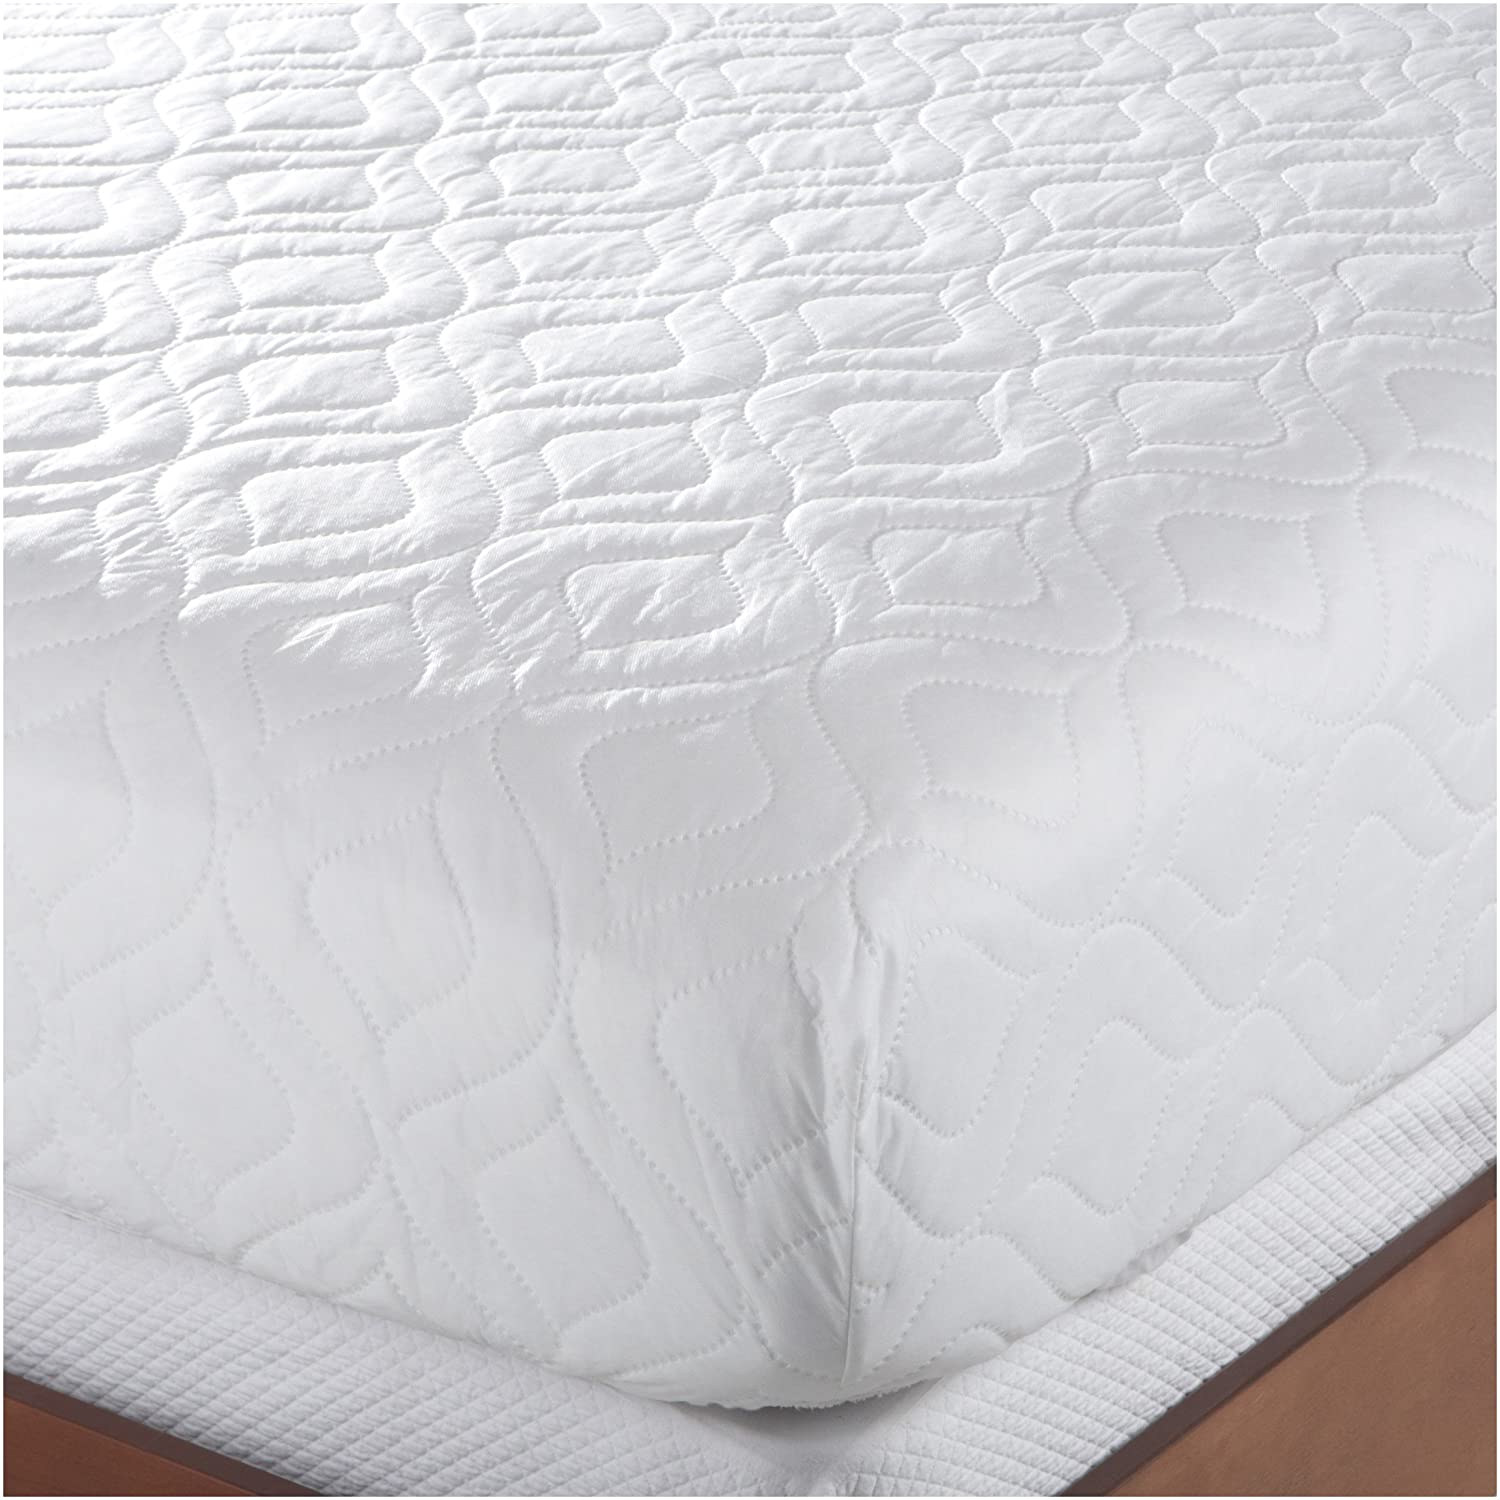 sealy elegant unique top performance mattress plush serta king response euro of pillow inch size topper